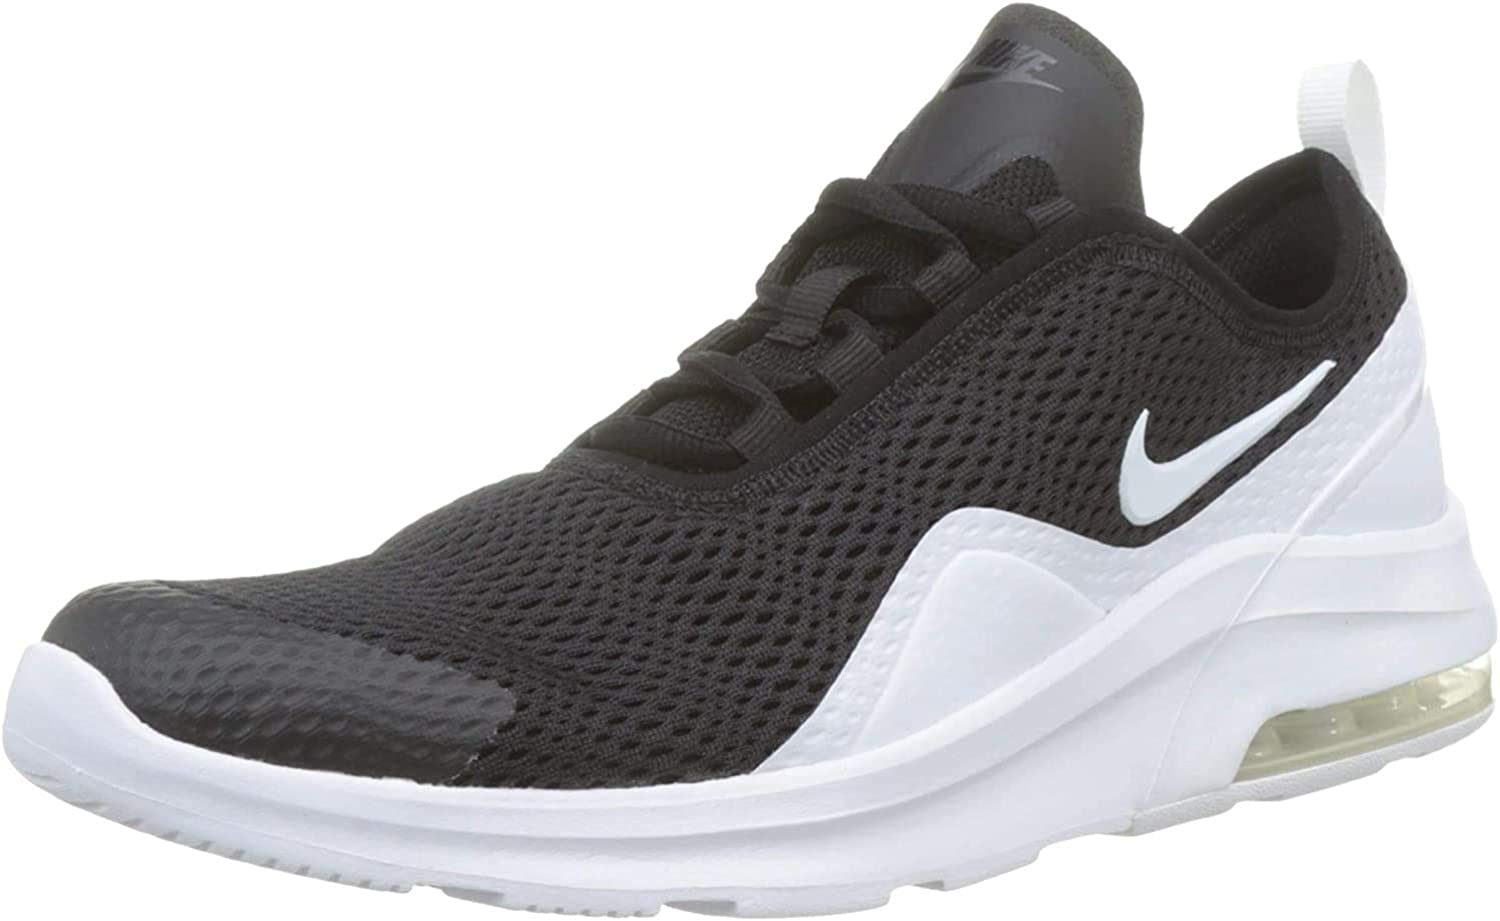 marcador Dedicación Ya  Amazon.com | Nike Air Max Motion 2 Sneaker - Kids' (4.5, Black/White) |  Shoes